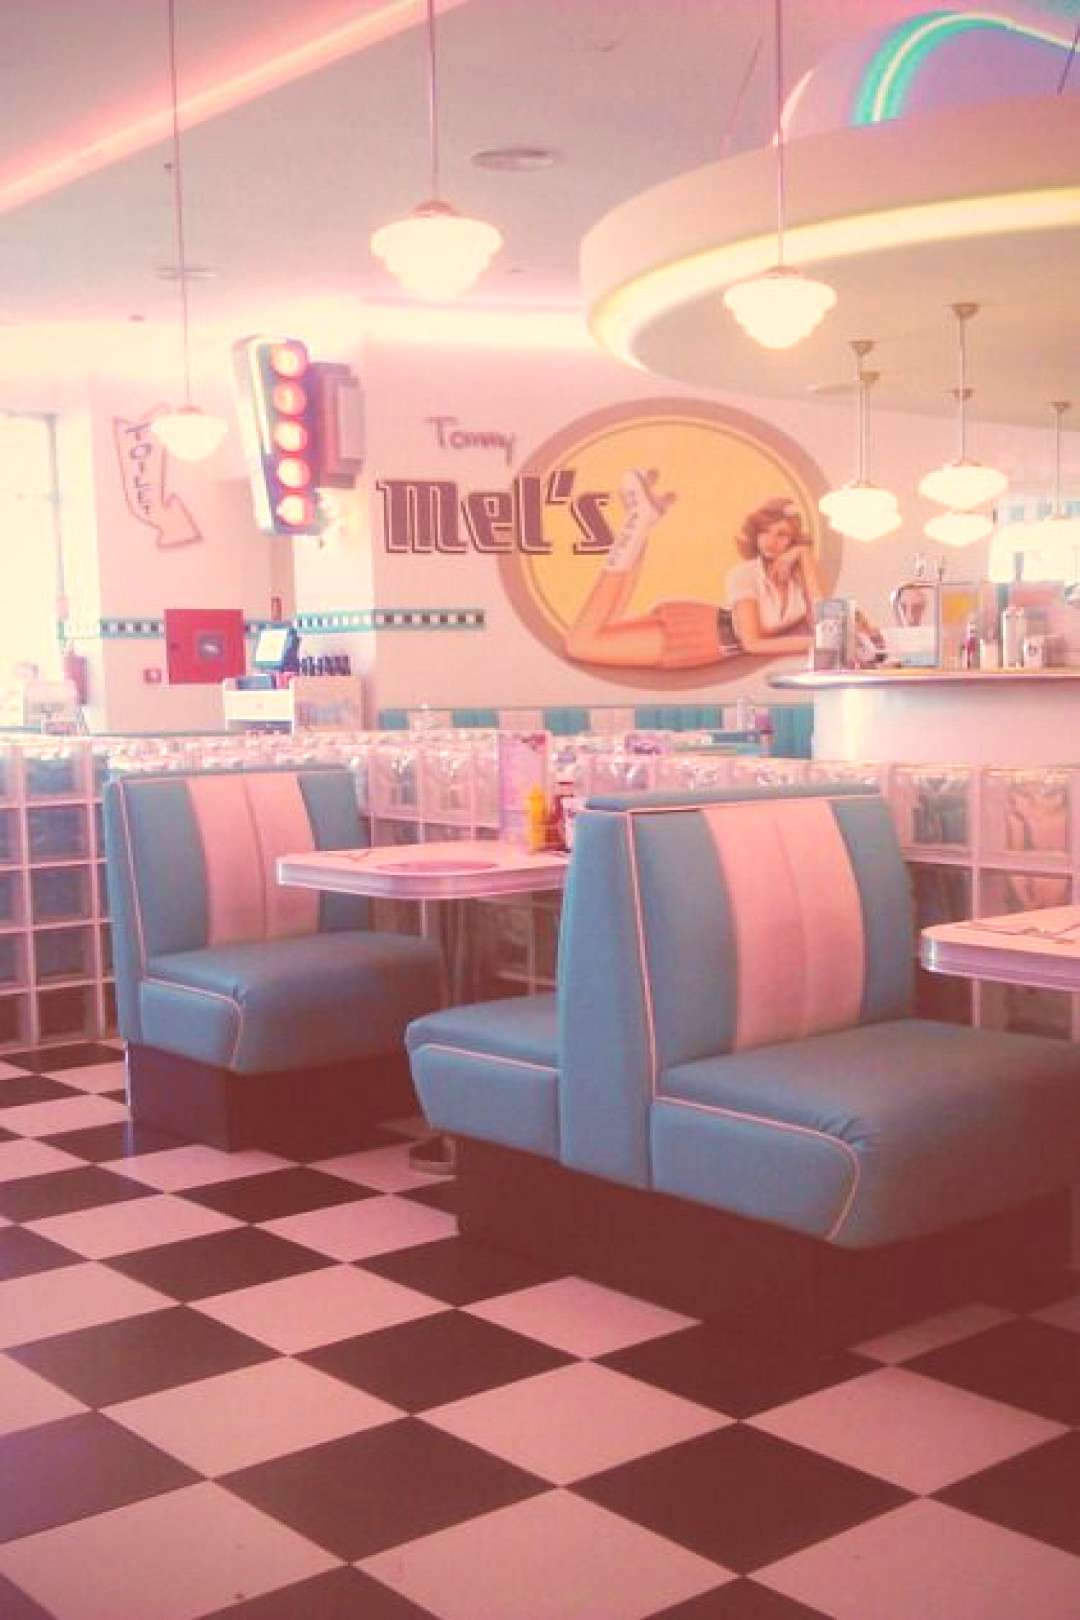 Wallpapers Aesthetic Retro Anime + Wallpapers Aesthetic Retro wallpapers aesthetic retro anime / wa